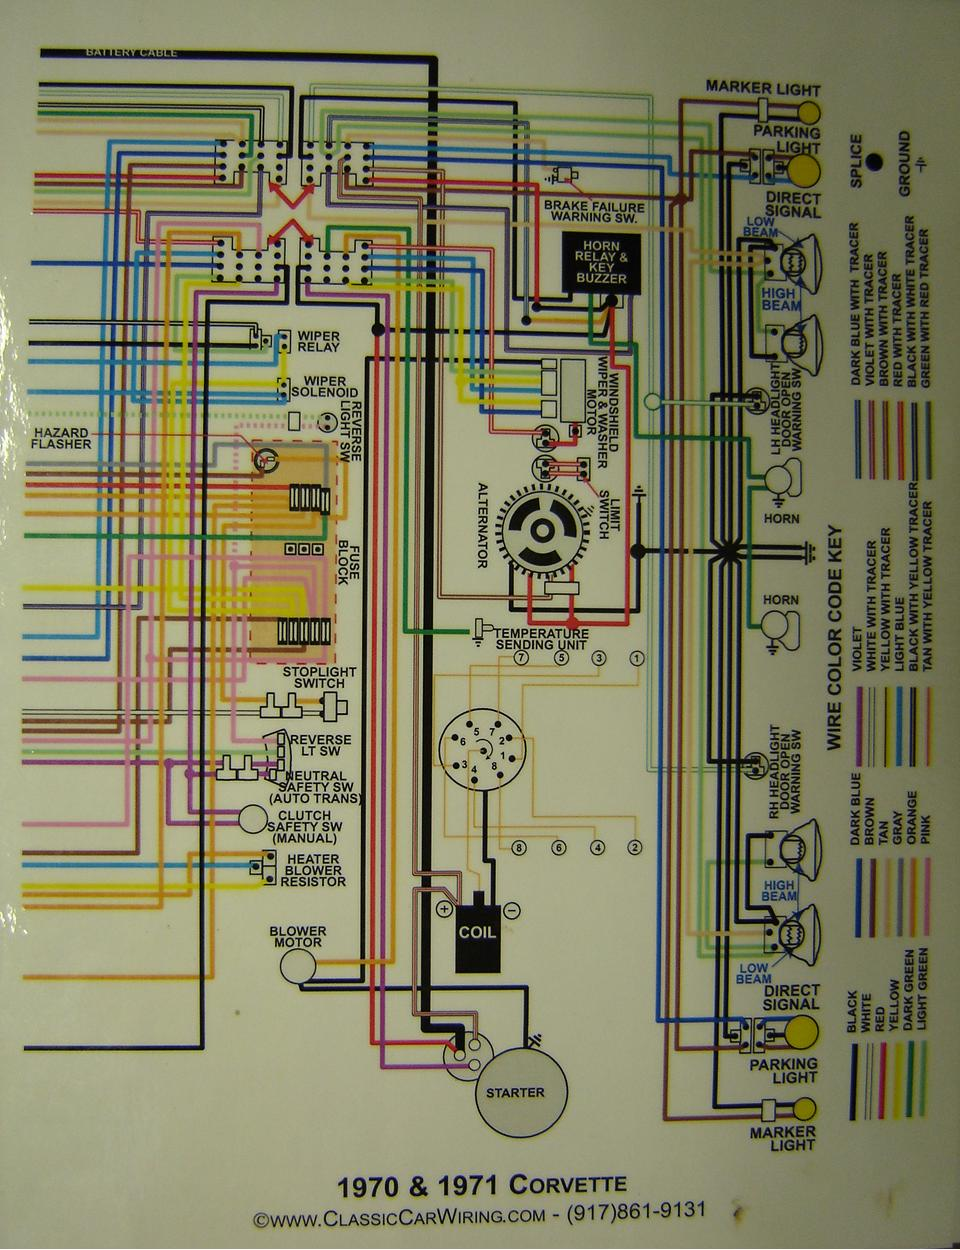 medium resolution of chevy diagrams 1978 corvette fuse panel diagram 1970 71 corvette color wiring diagram 2 drawing b